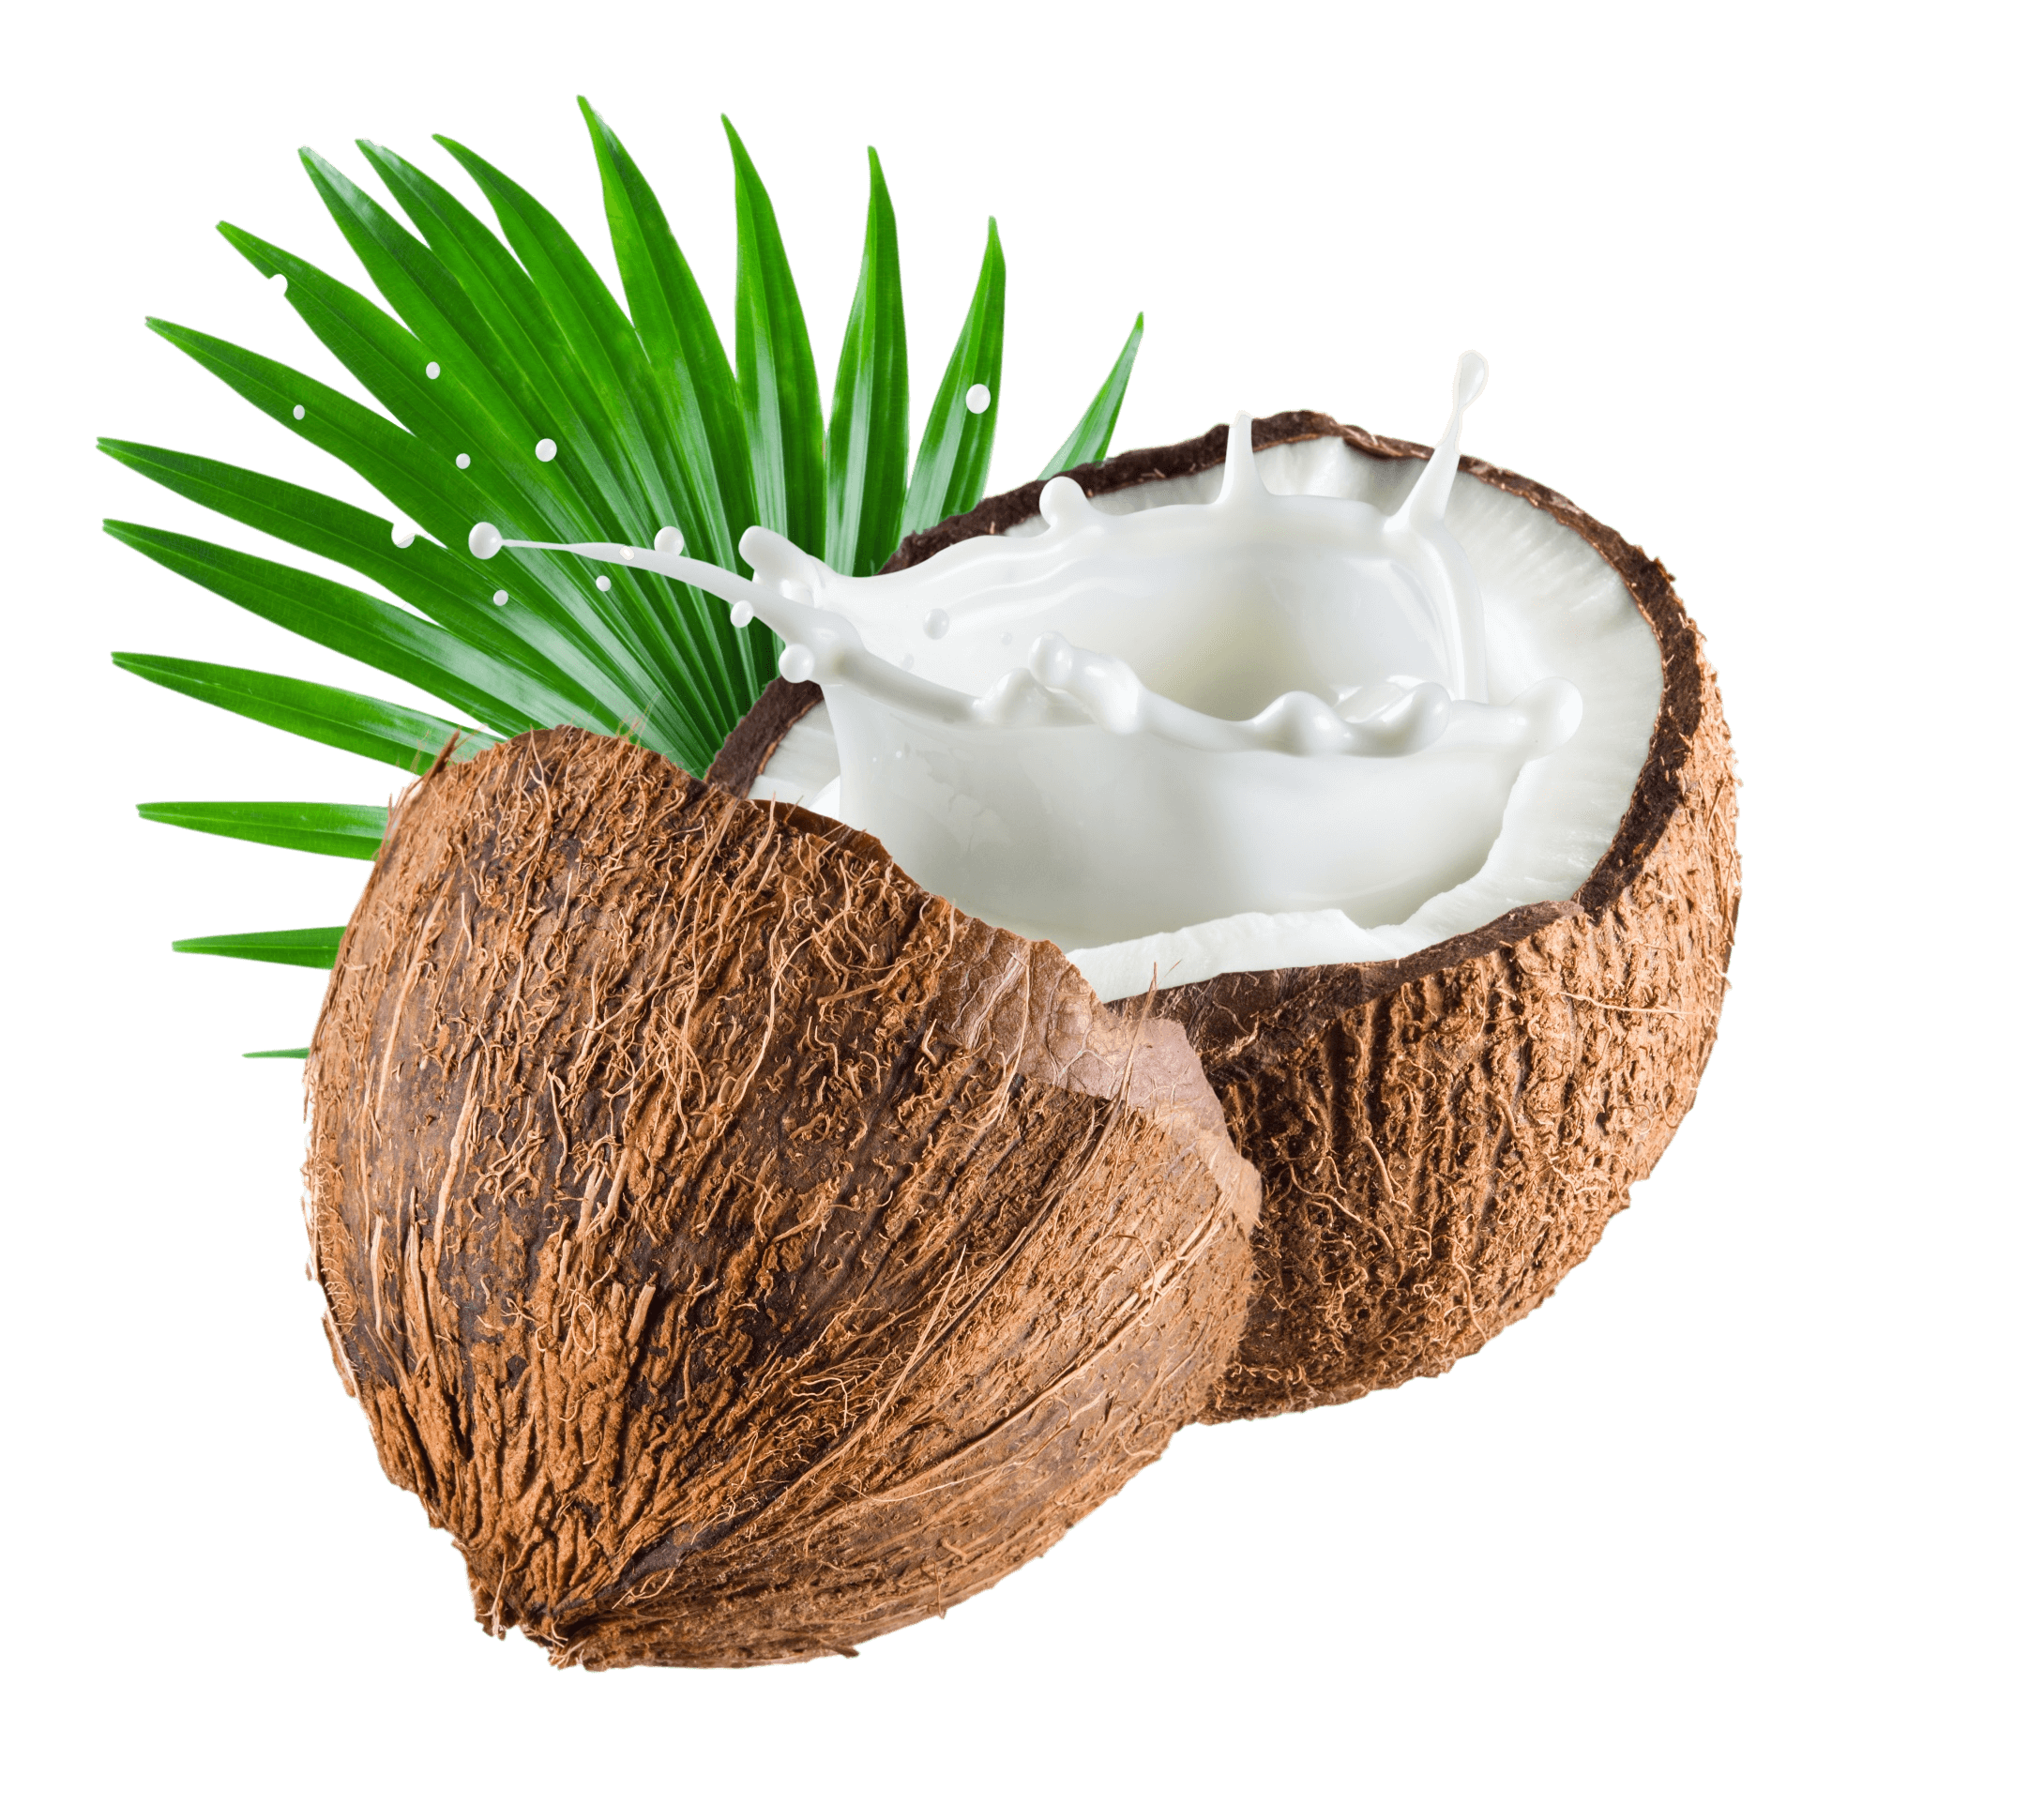 Image of a coconut